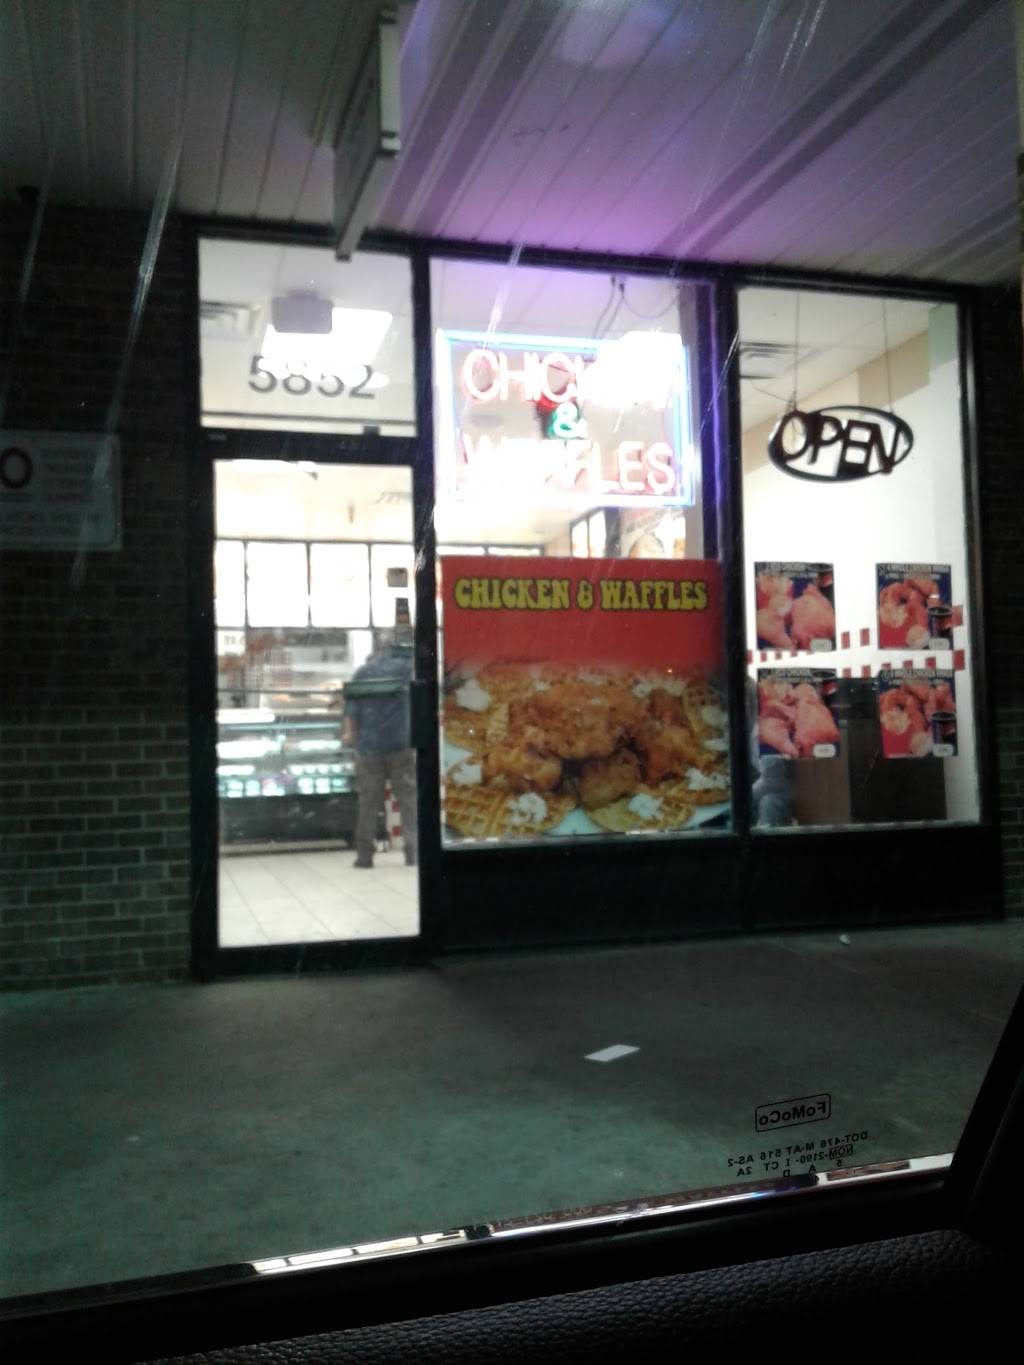 NY Chicken and Grill | restaurant | 5852 Silver Hill Rd, District Heights, MD 20747, USA | 3017357700 OR +1 301-735-7700